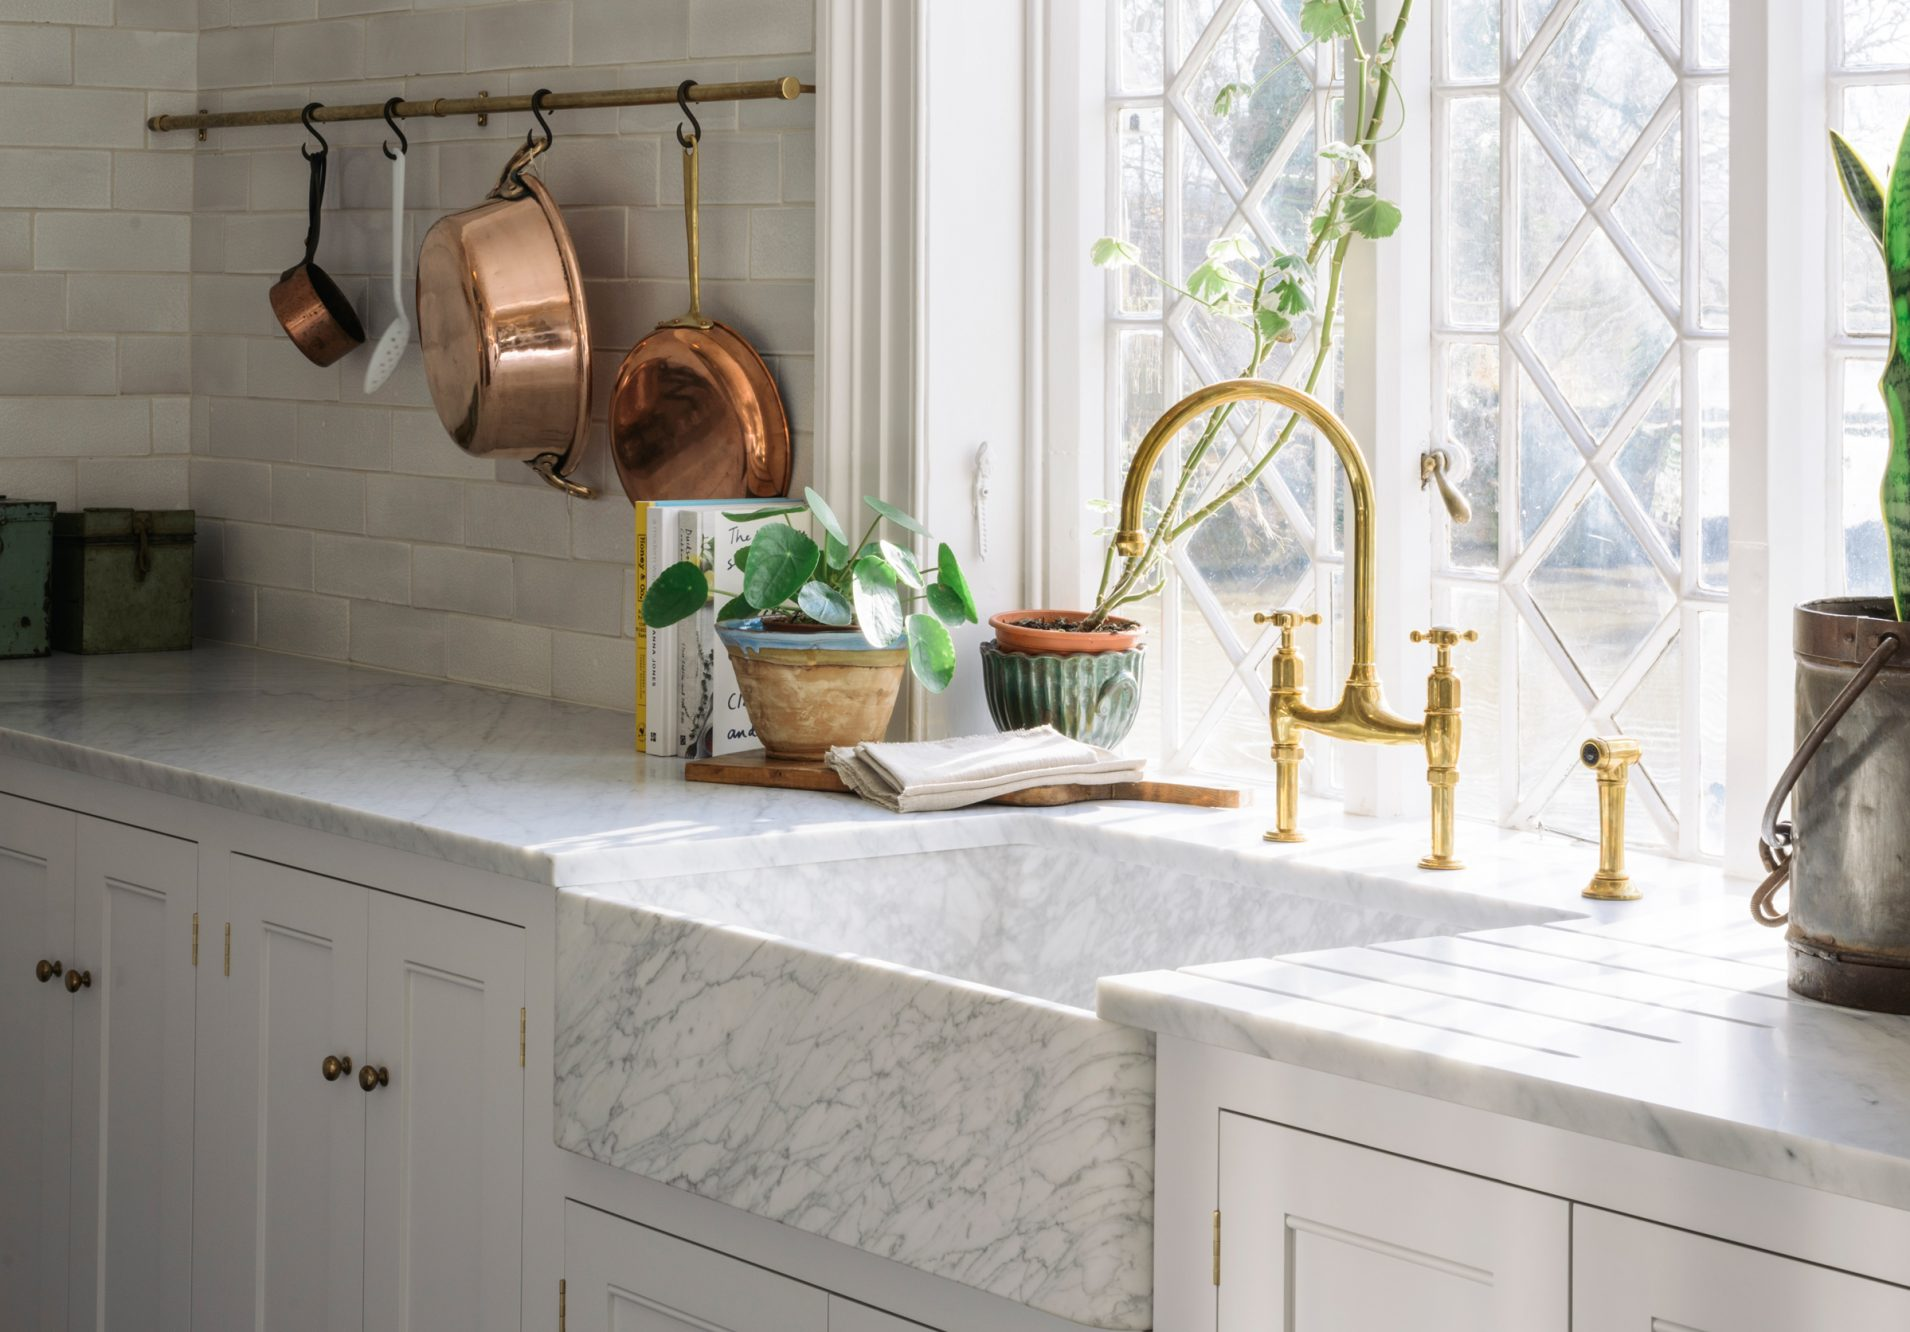 Should I have a real marble worktop in my kitchen?